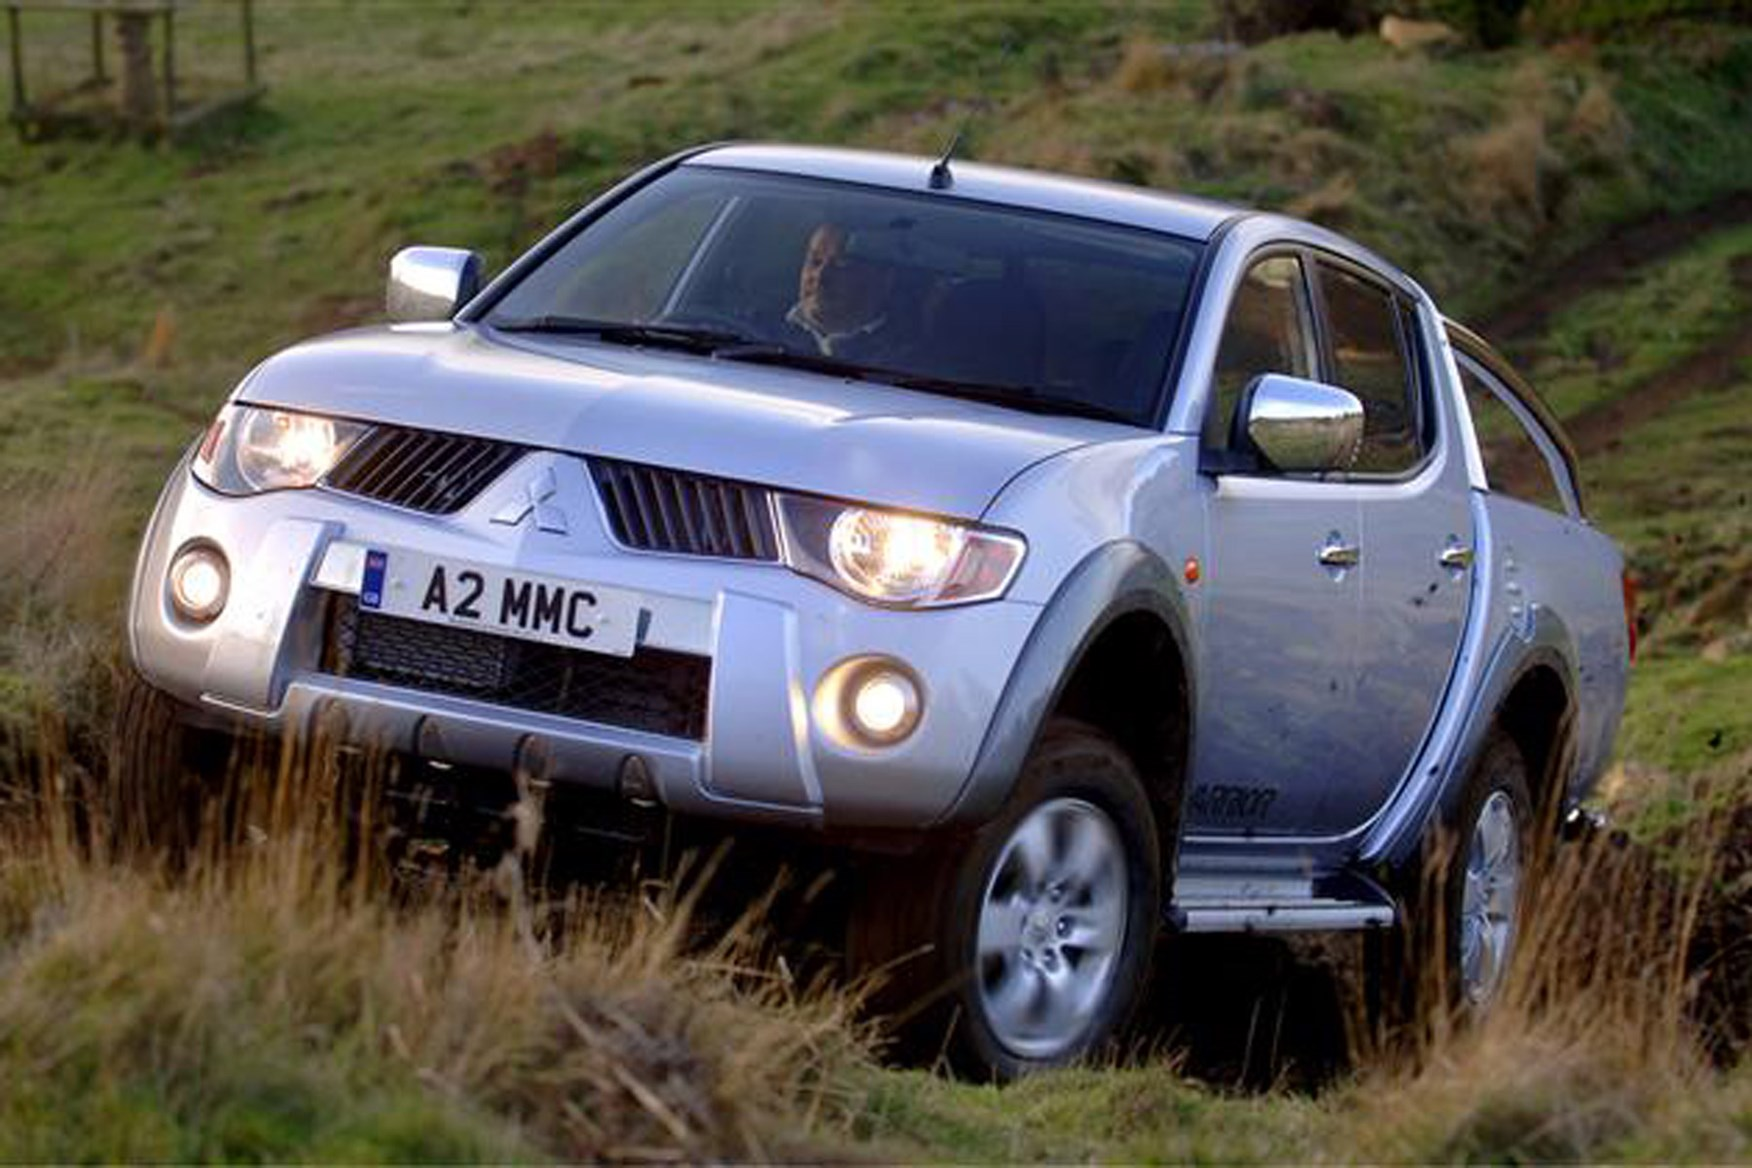 Mitsubishi L200 2006-2015 review on Parkers Vans - off road capabilities